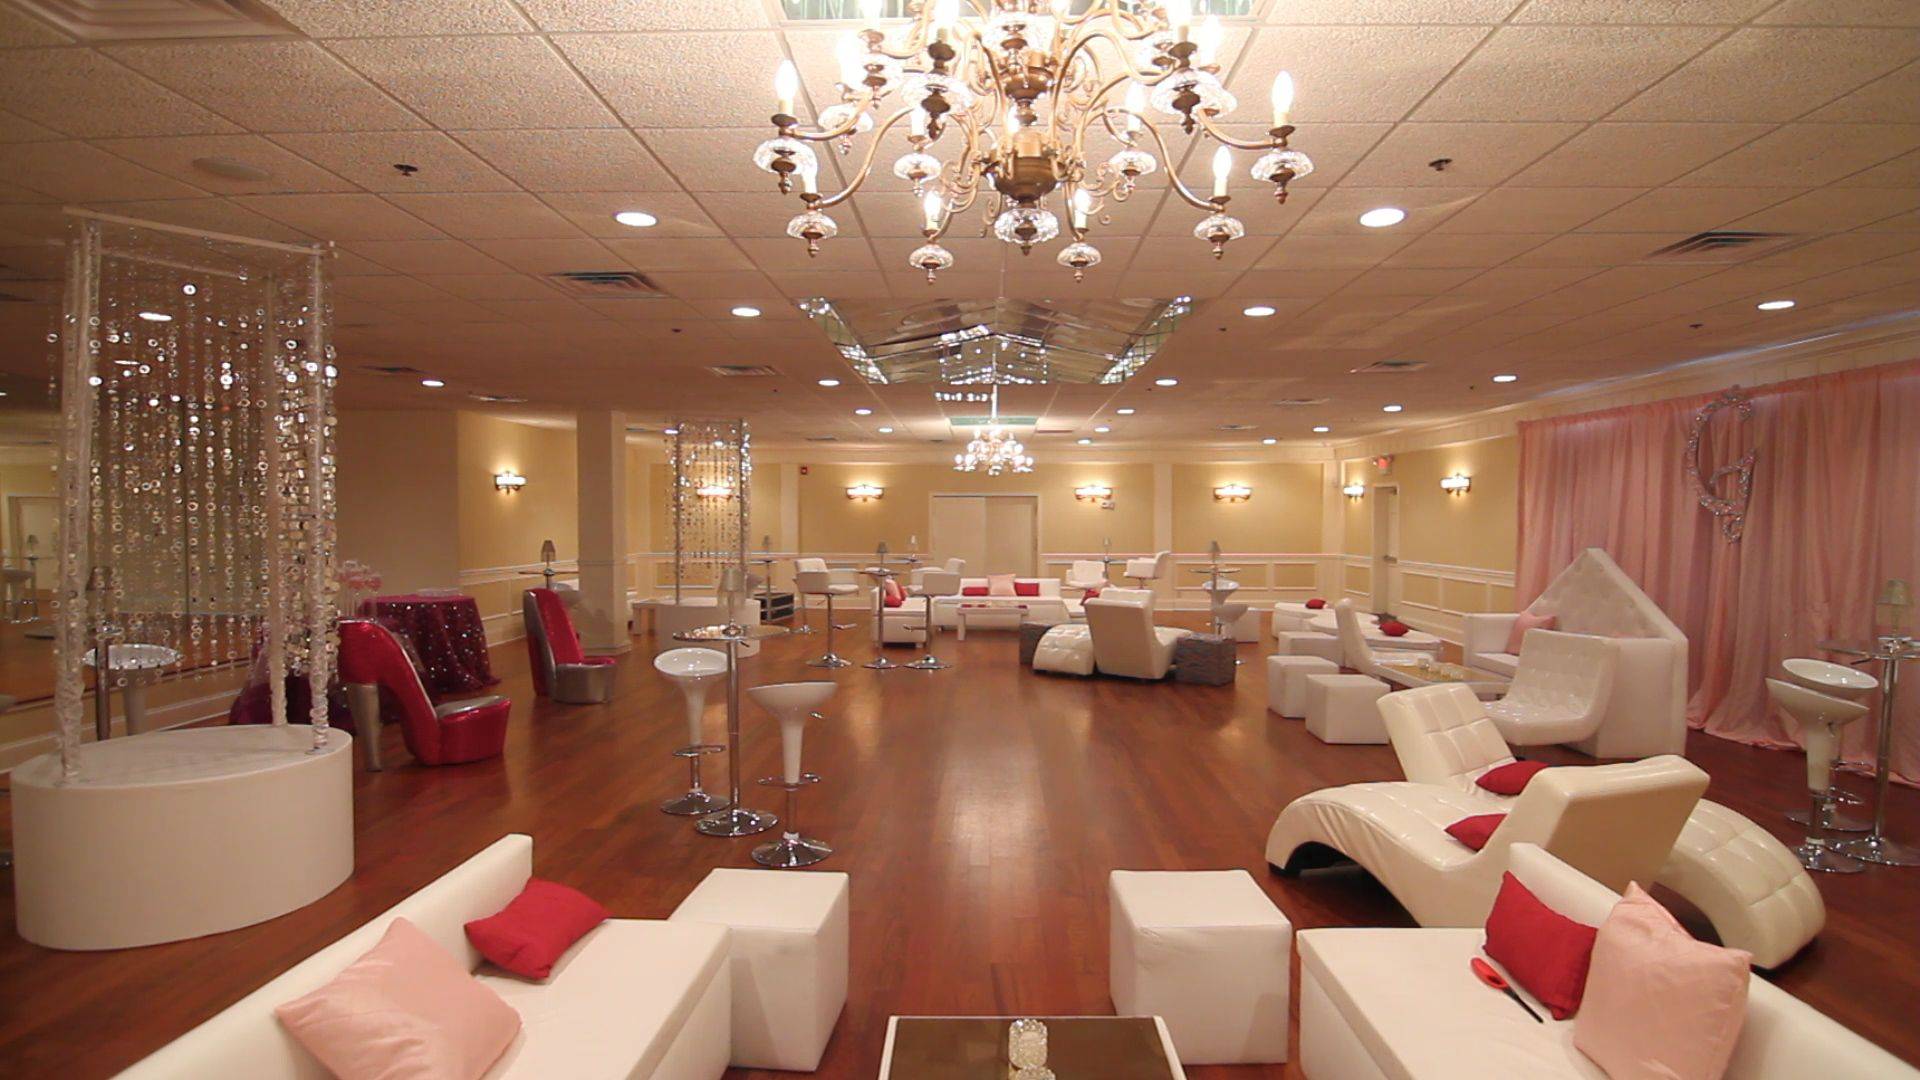 New Jersey's Catering Hall & Birthday Party